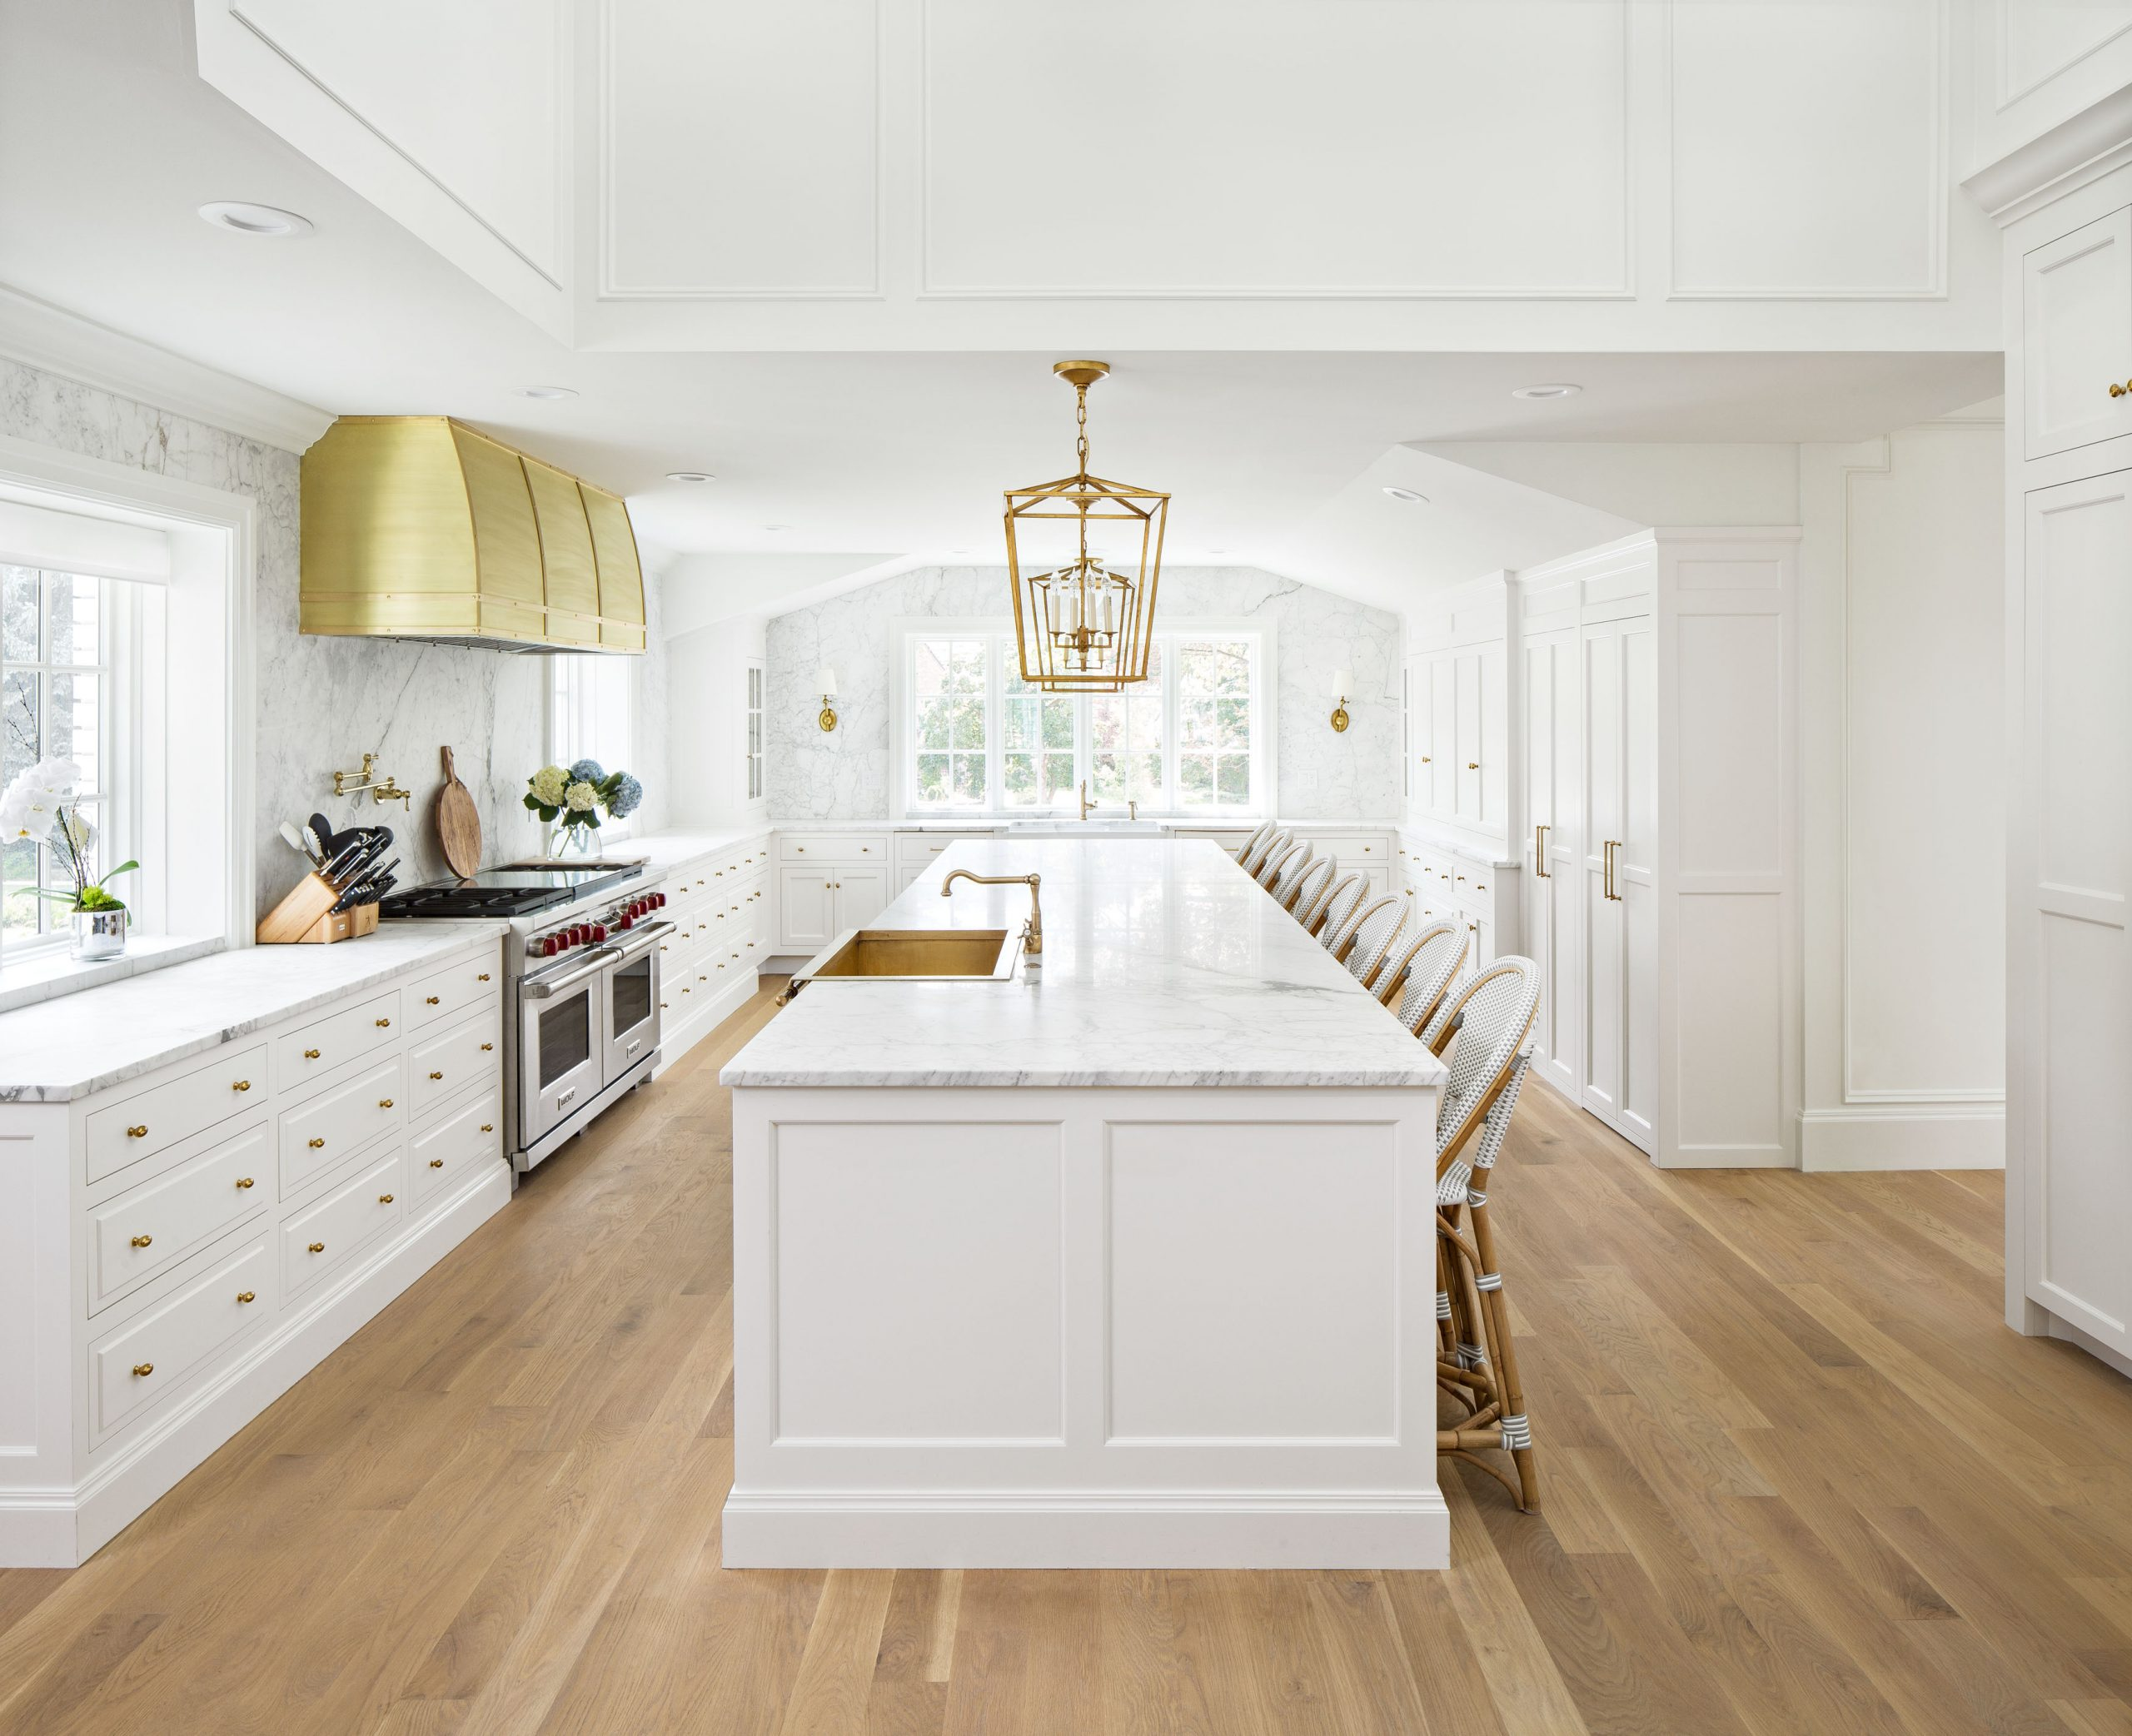 The best custom cabinetry and design is not only going to work hard for you and your family, but beautifully express your design aesthetic as well. We can make that happen. Check us out at ChristopherScottCabinetry.com!